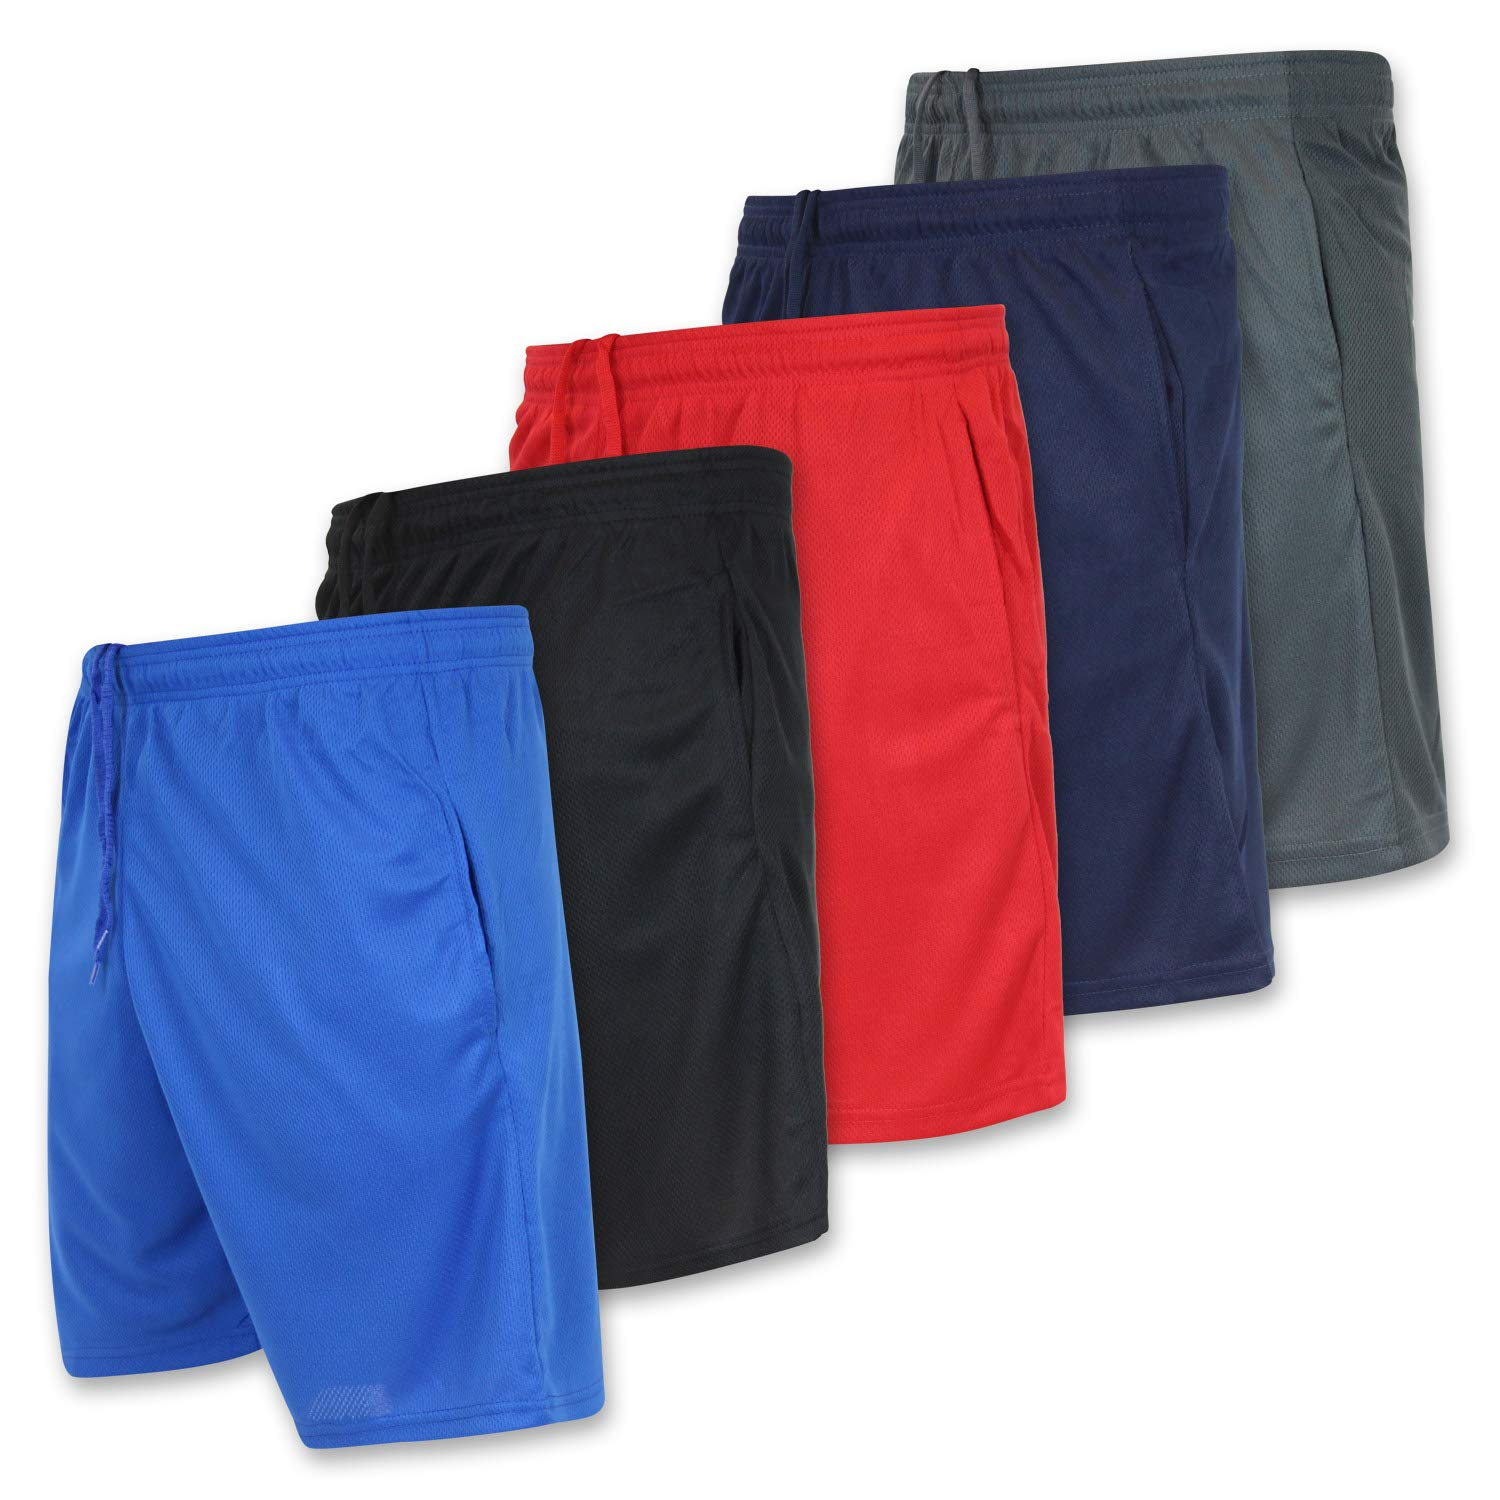 Men's Active Athletic Basketball Essentials Performance Gym Workout Shorts with Pockets - Set 7-5 Pack, M